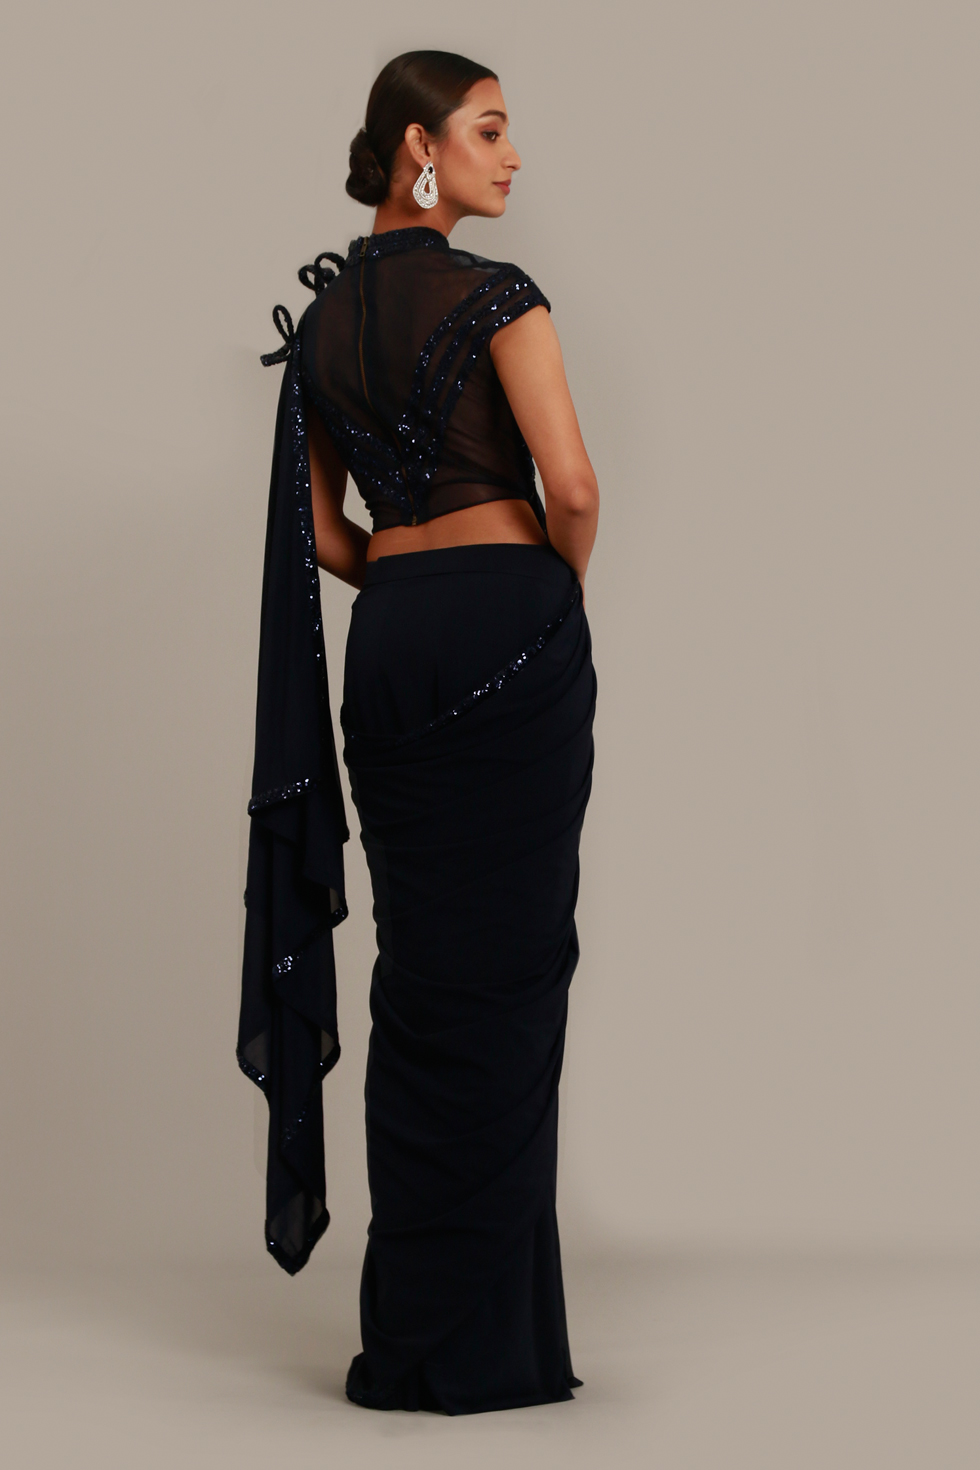 Midnight blue saree with 3-D detail on the shoulder, cutout blouse and shimmery details